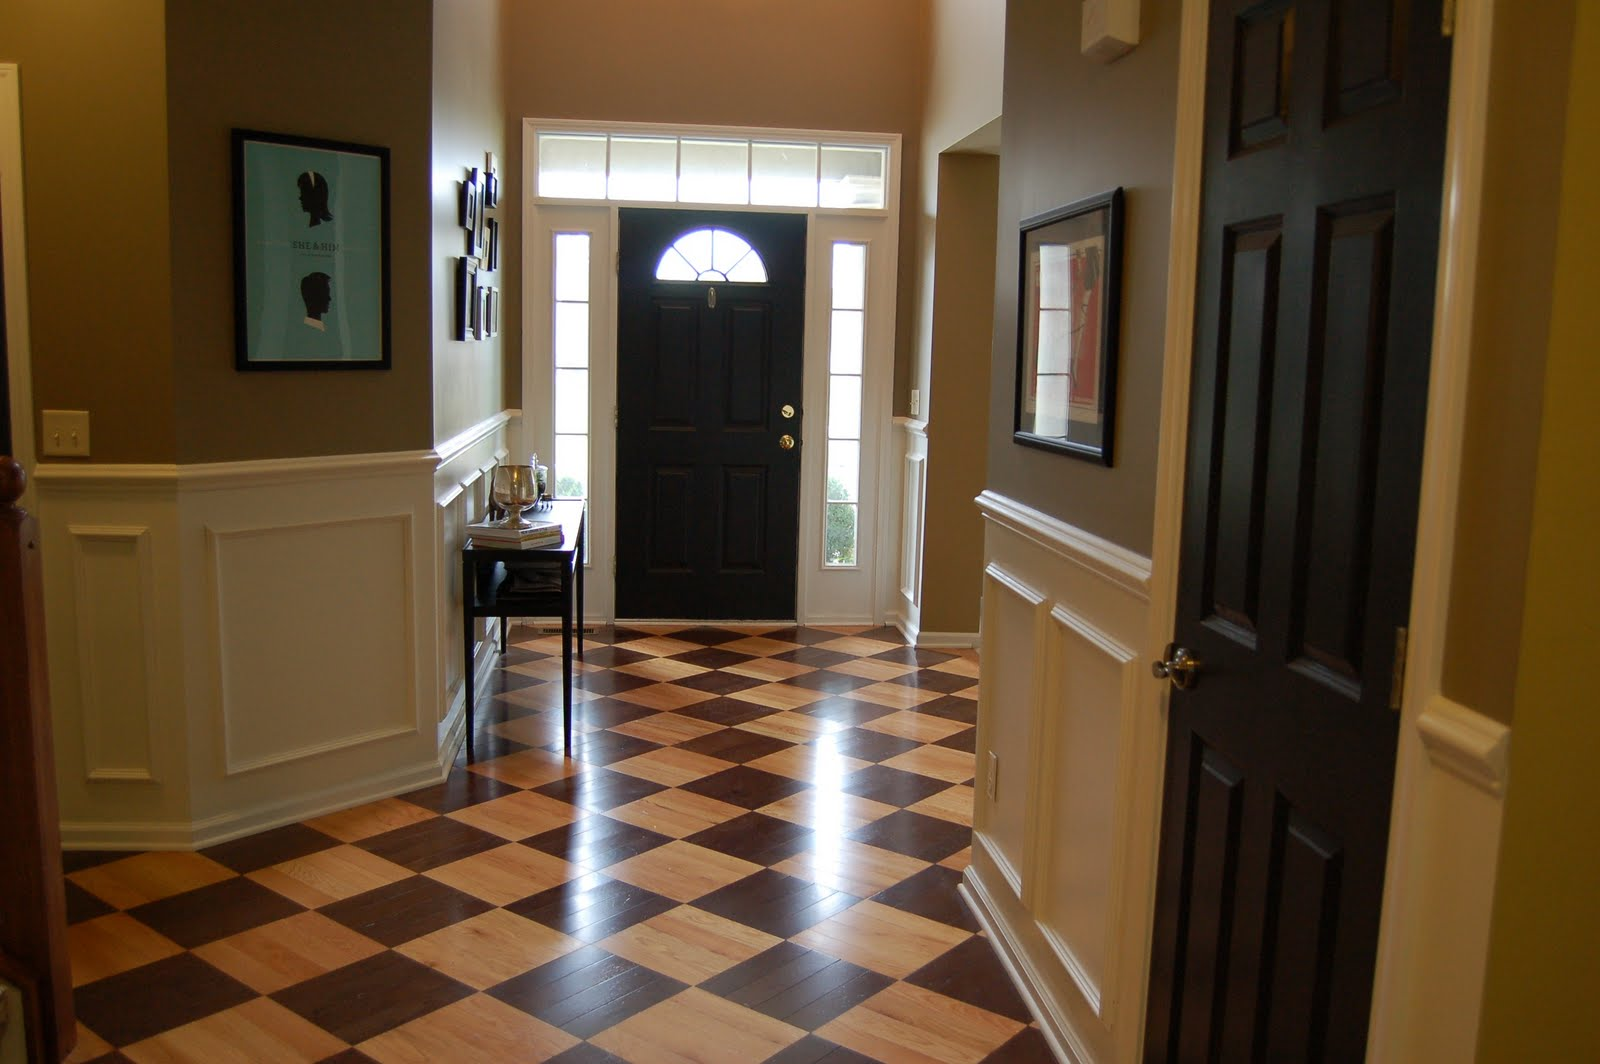 Painting Foyer Doors : Design dump flattered jen s foyer